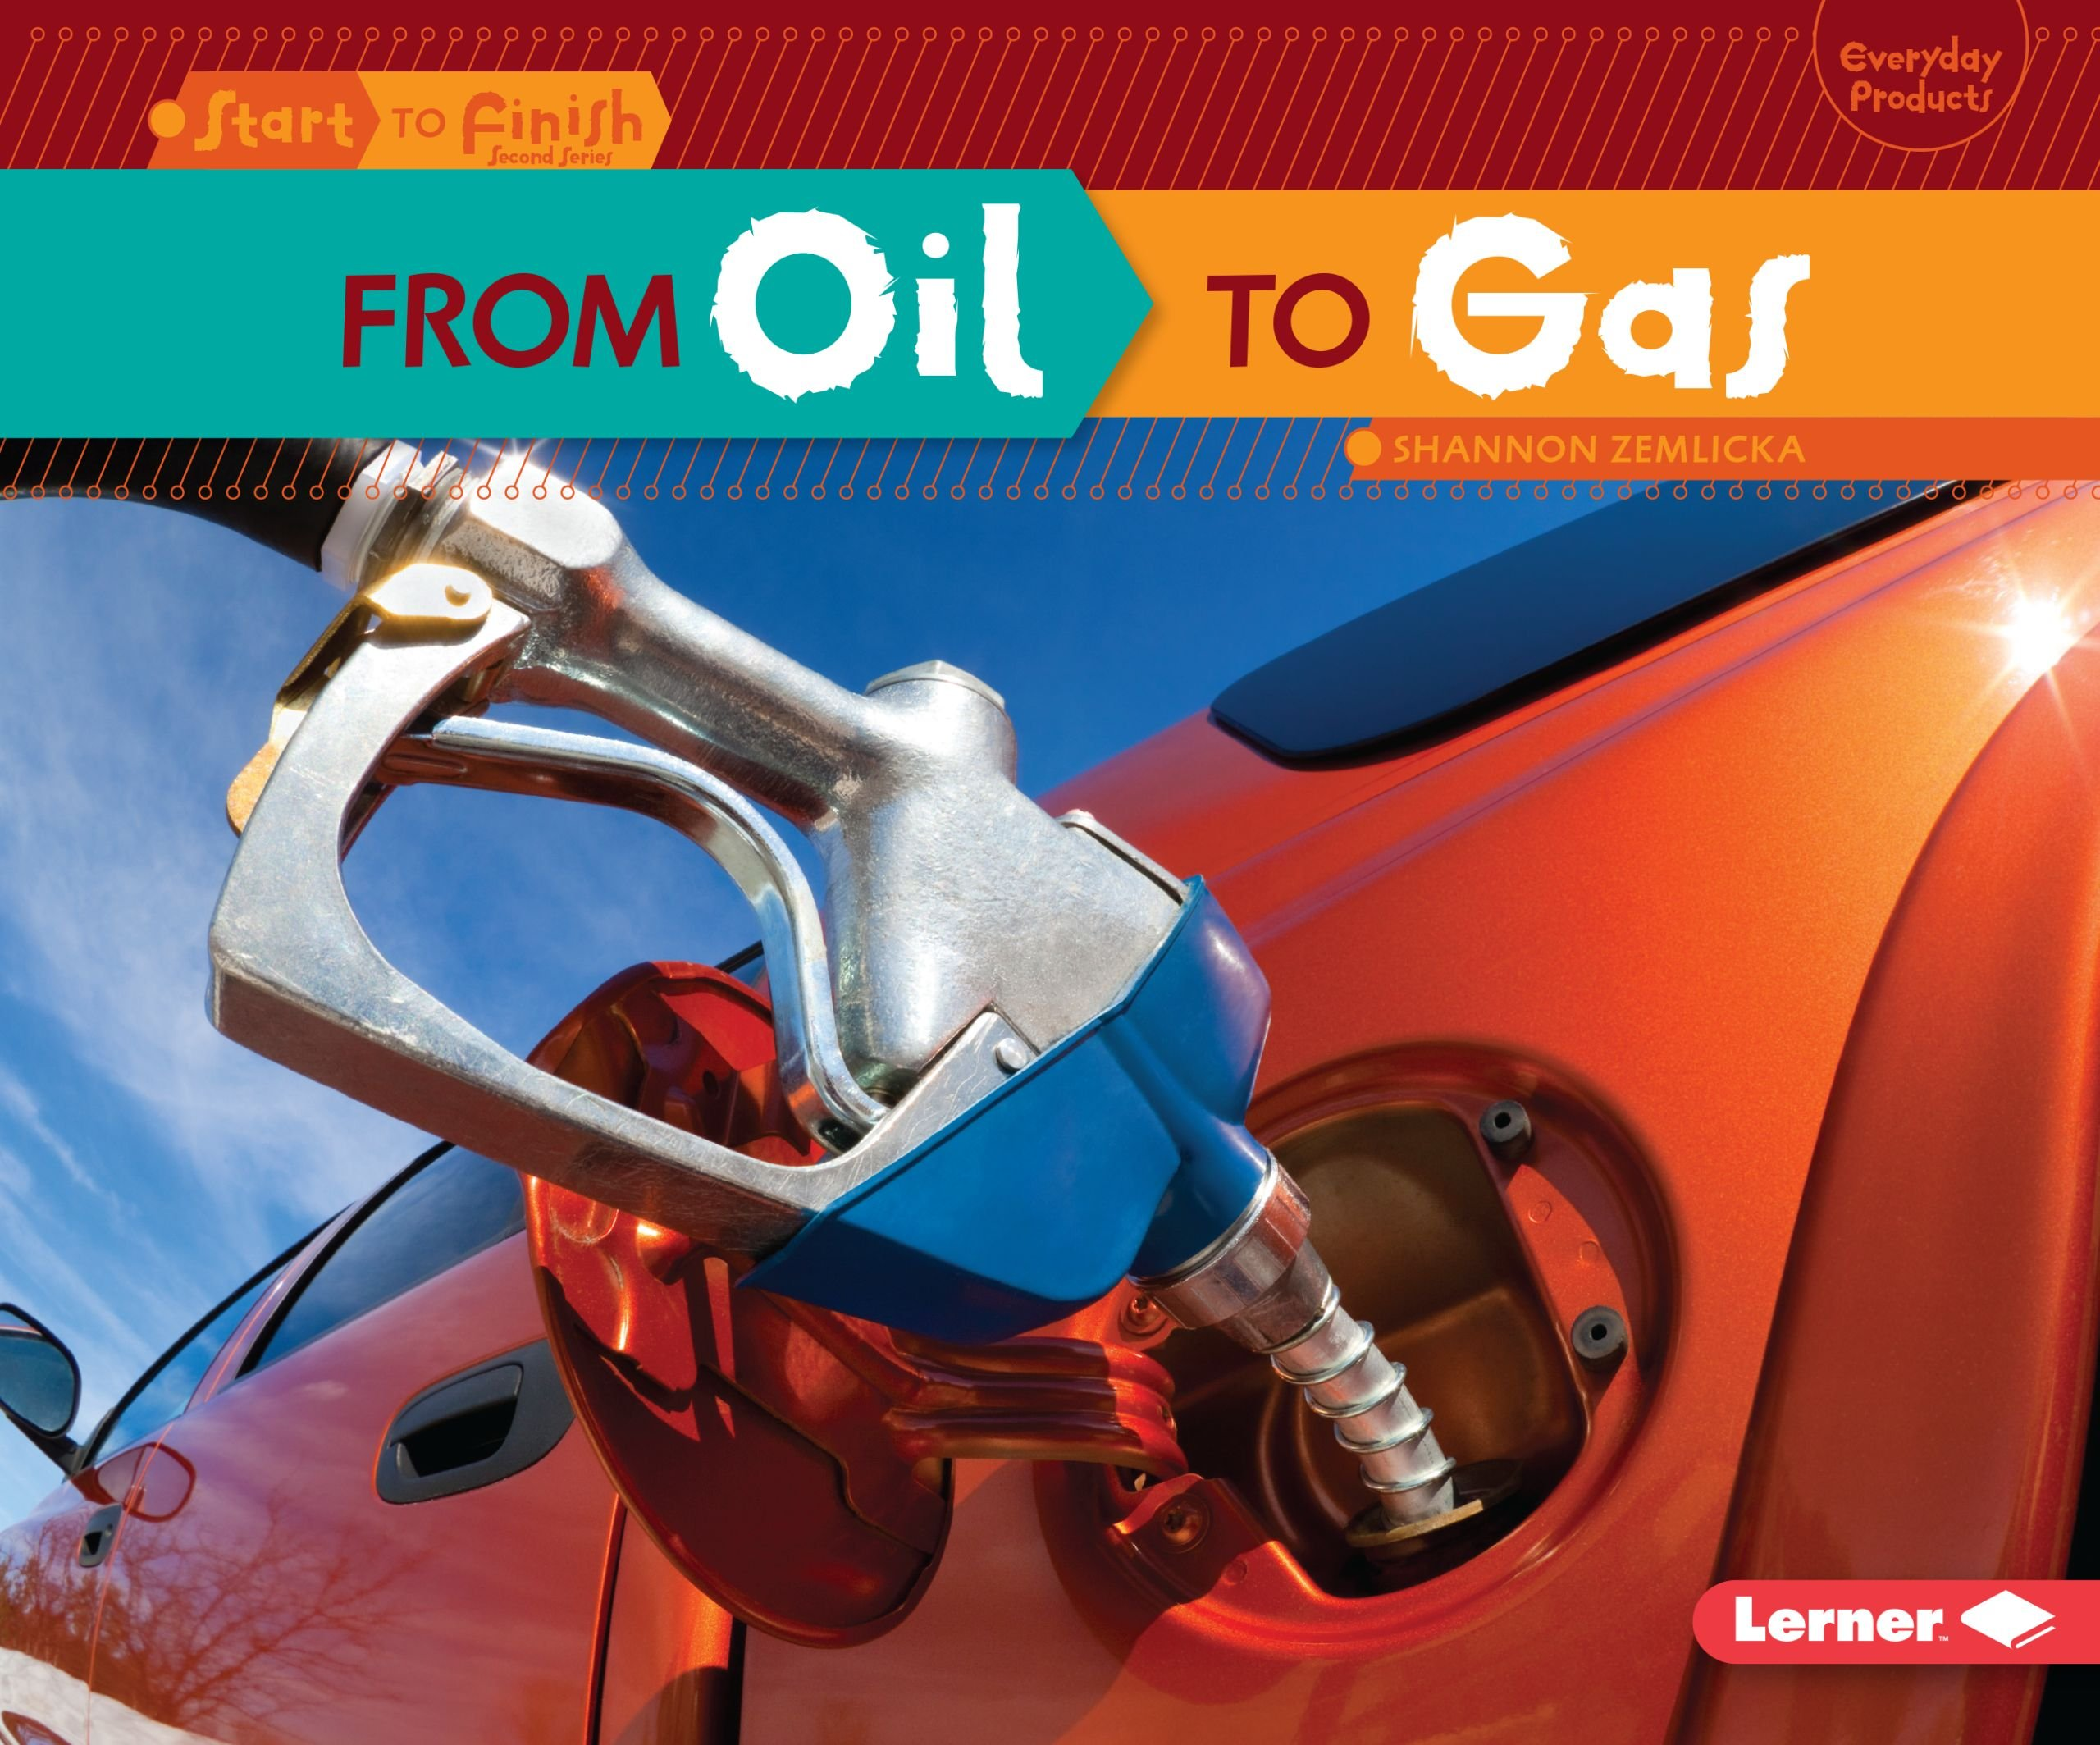 From Oil to Gas (Start to Finish, Second Series: Everyday Products)